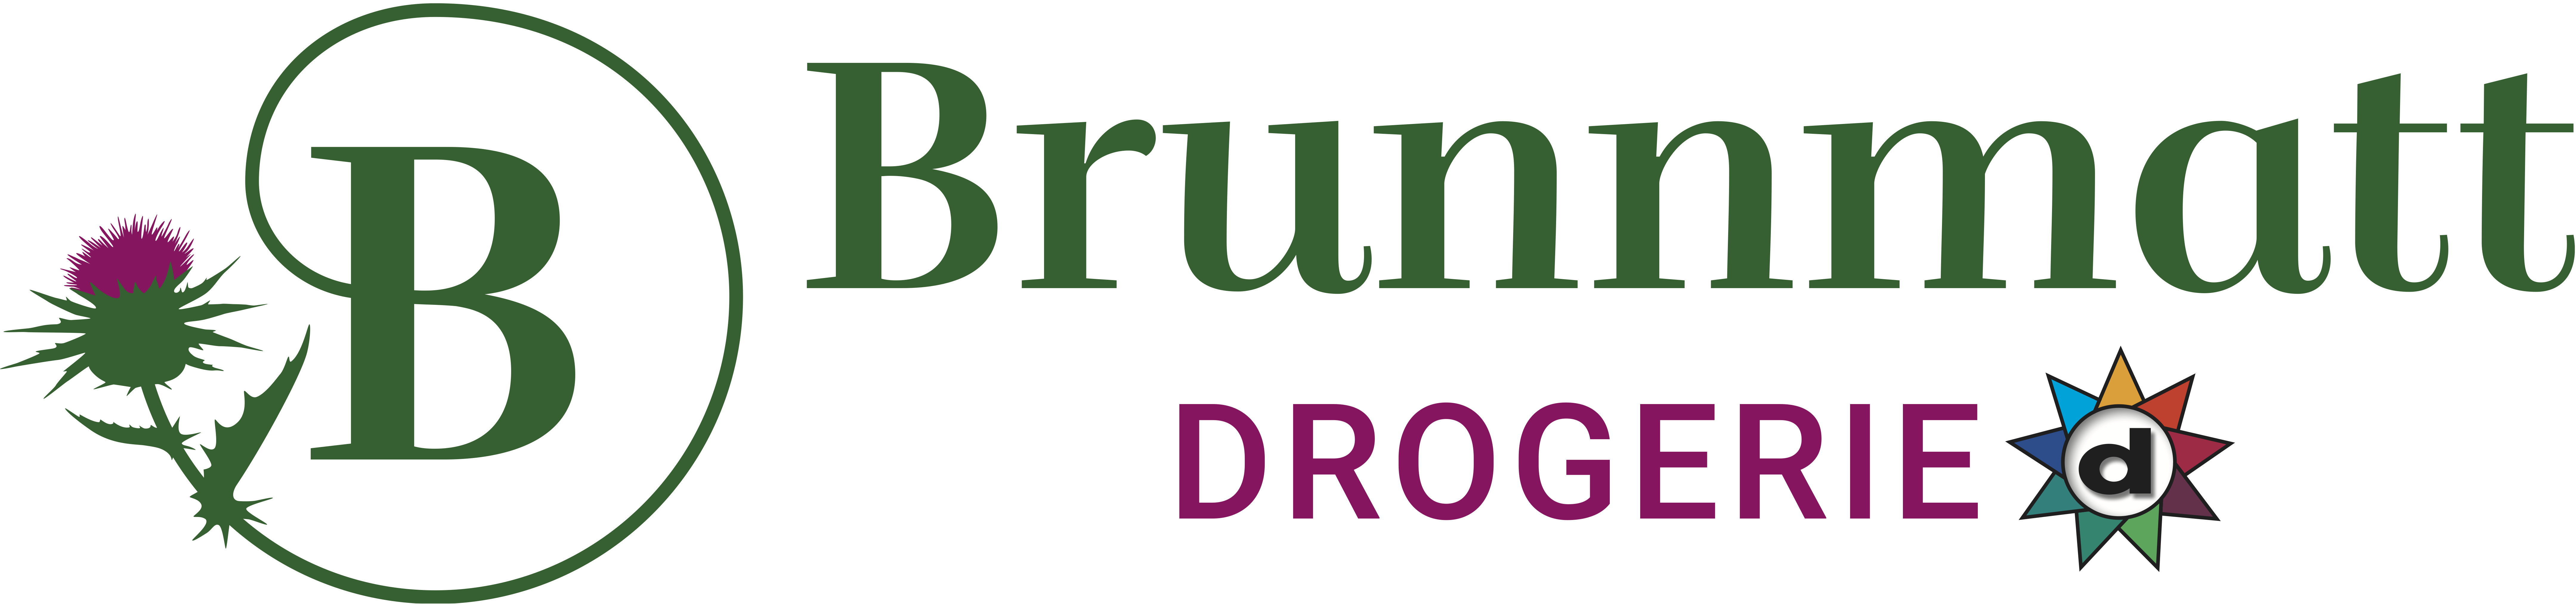 Brunnmatt Drogerie Shop